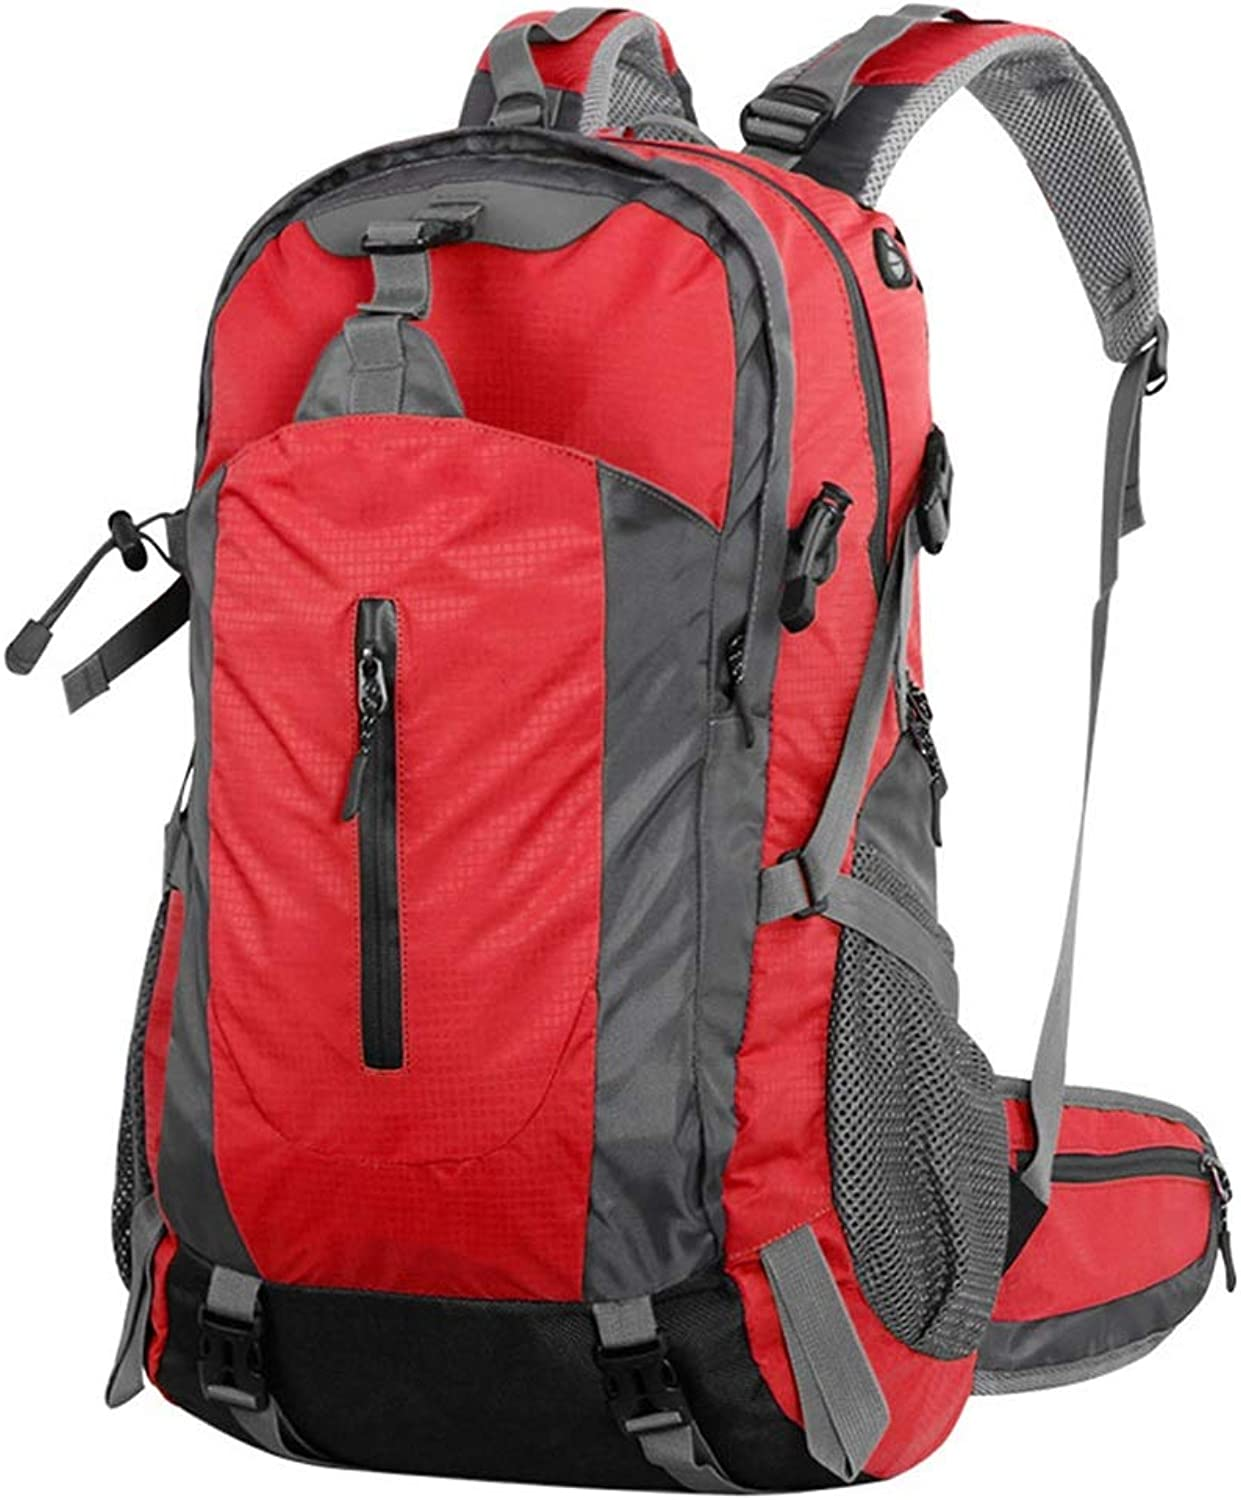 Outdoor Mountaineering Bag 45L Large Capacity Outdoor Backpack Hiking Shoulder Bag Men and Women Outdoor Travel Bag (color   Red)